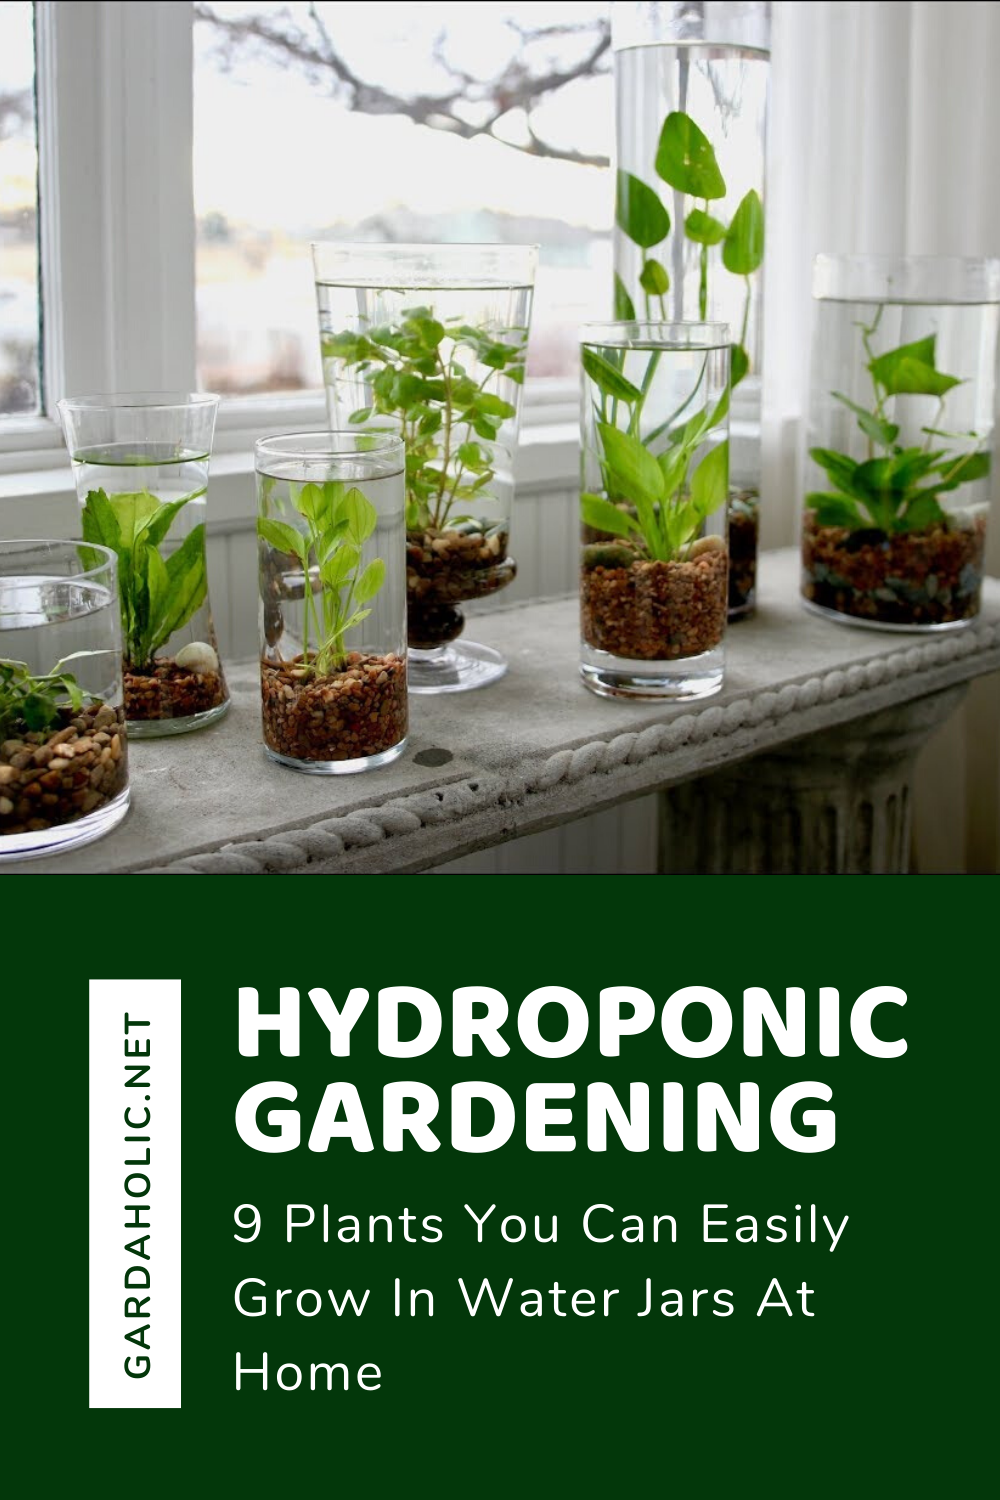 Hydroponic Gardening: 9 Plants You Can Easily Grow